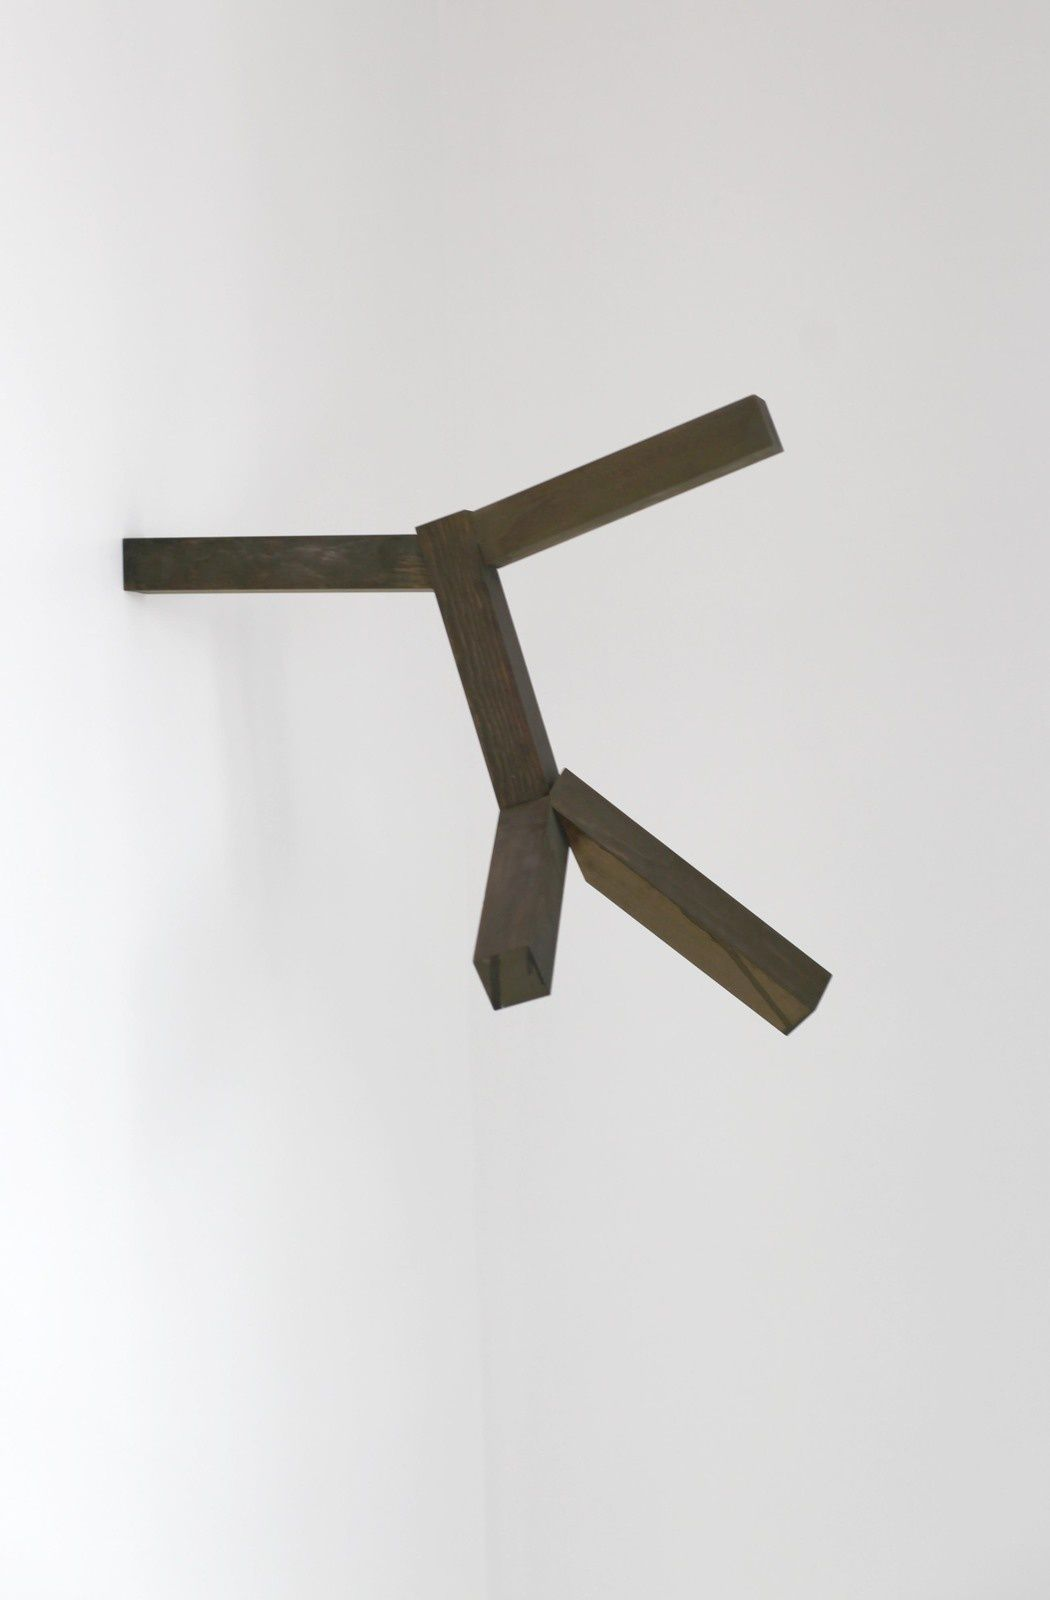 """Sans titre"", 1998 de Joël SHAPIRO - Courtesy Galerie Karsten Greve © Photo Éric Simon"